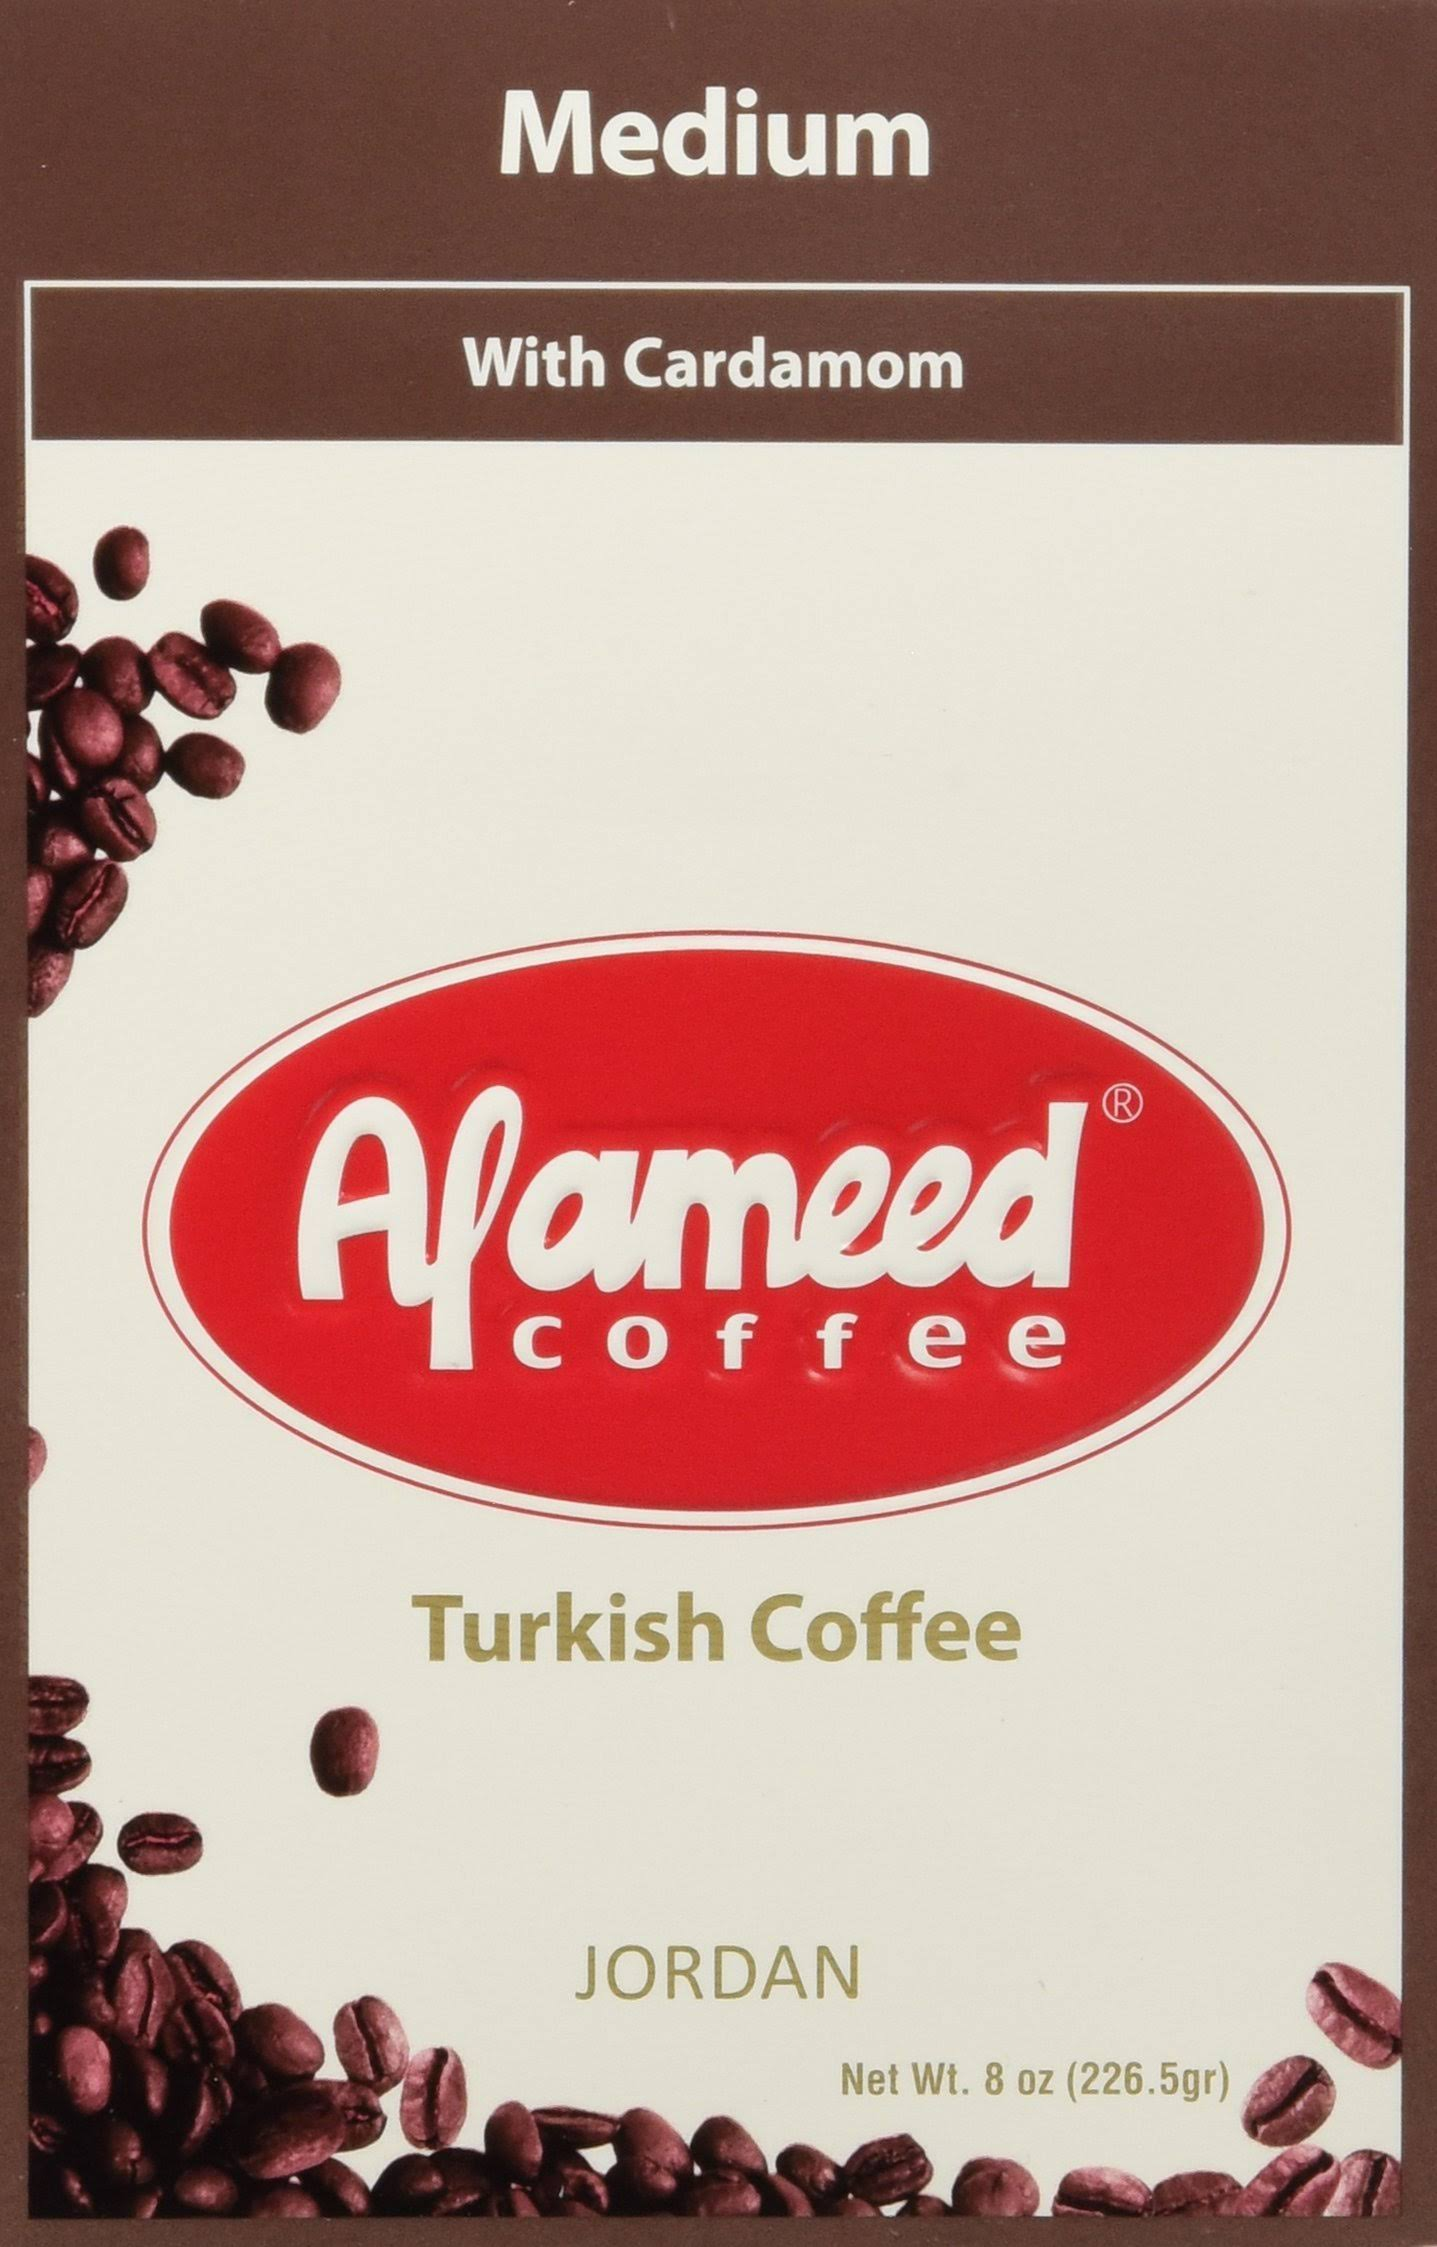 Alameed Coffee with Cardamom - Medium Roast, 0.5lb